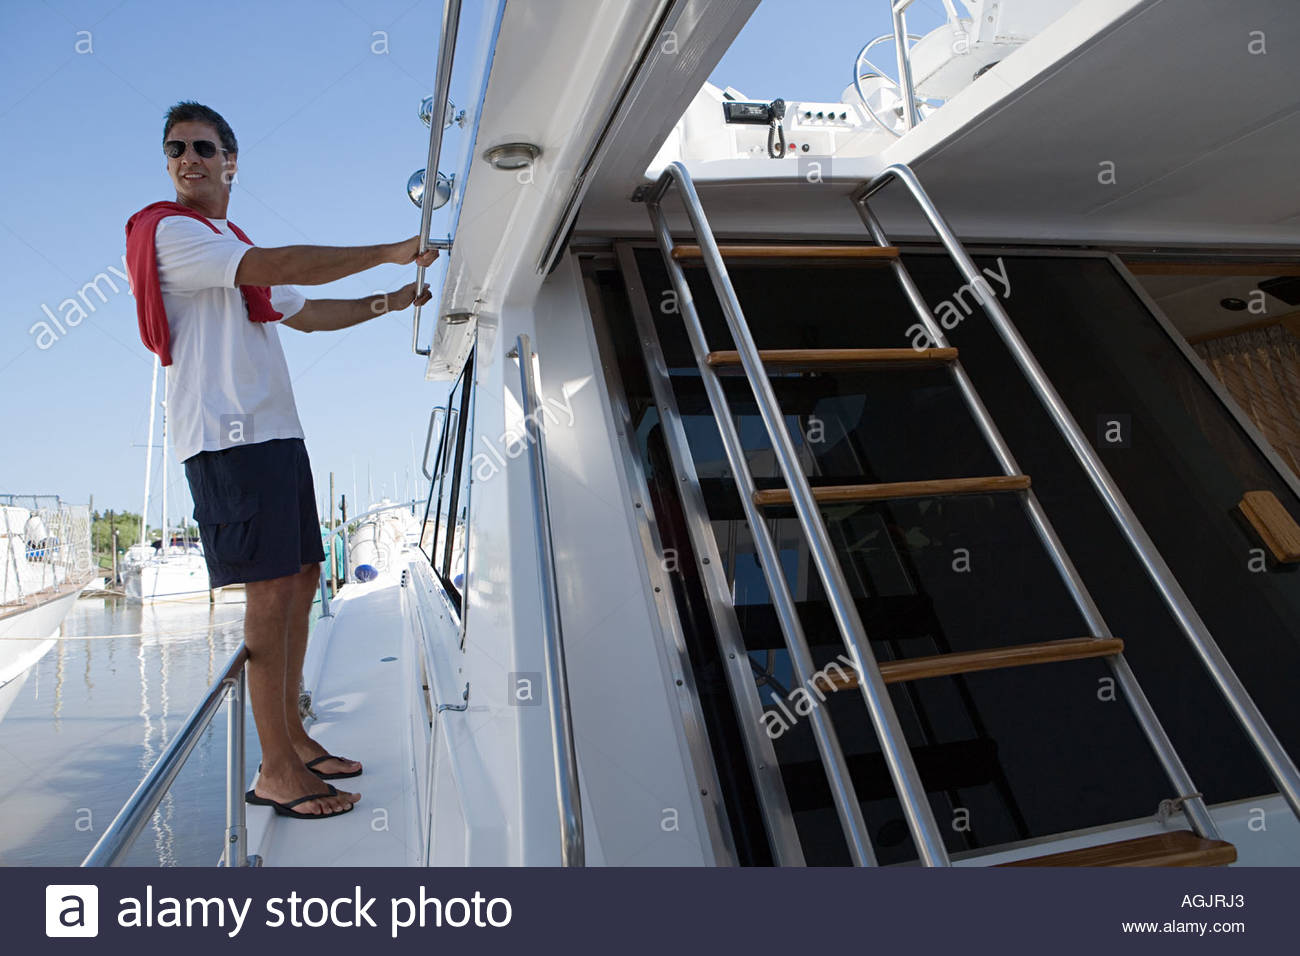 Man on a yacht - Stock Image